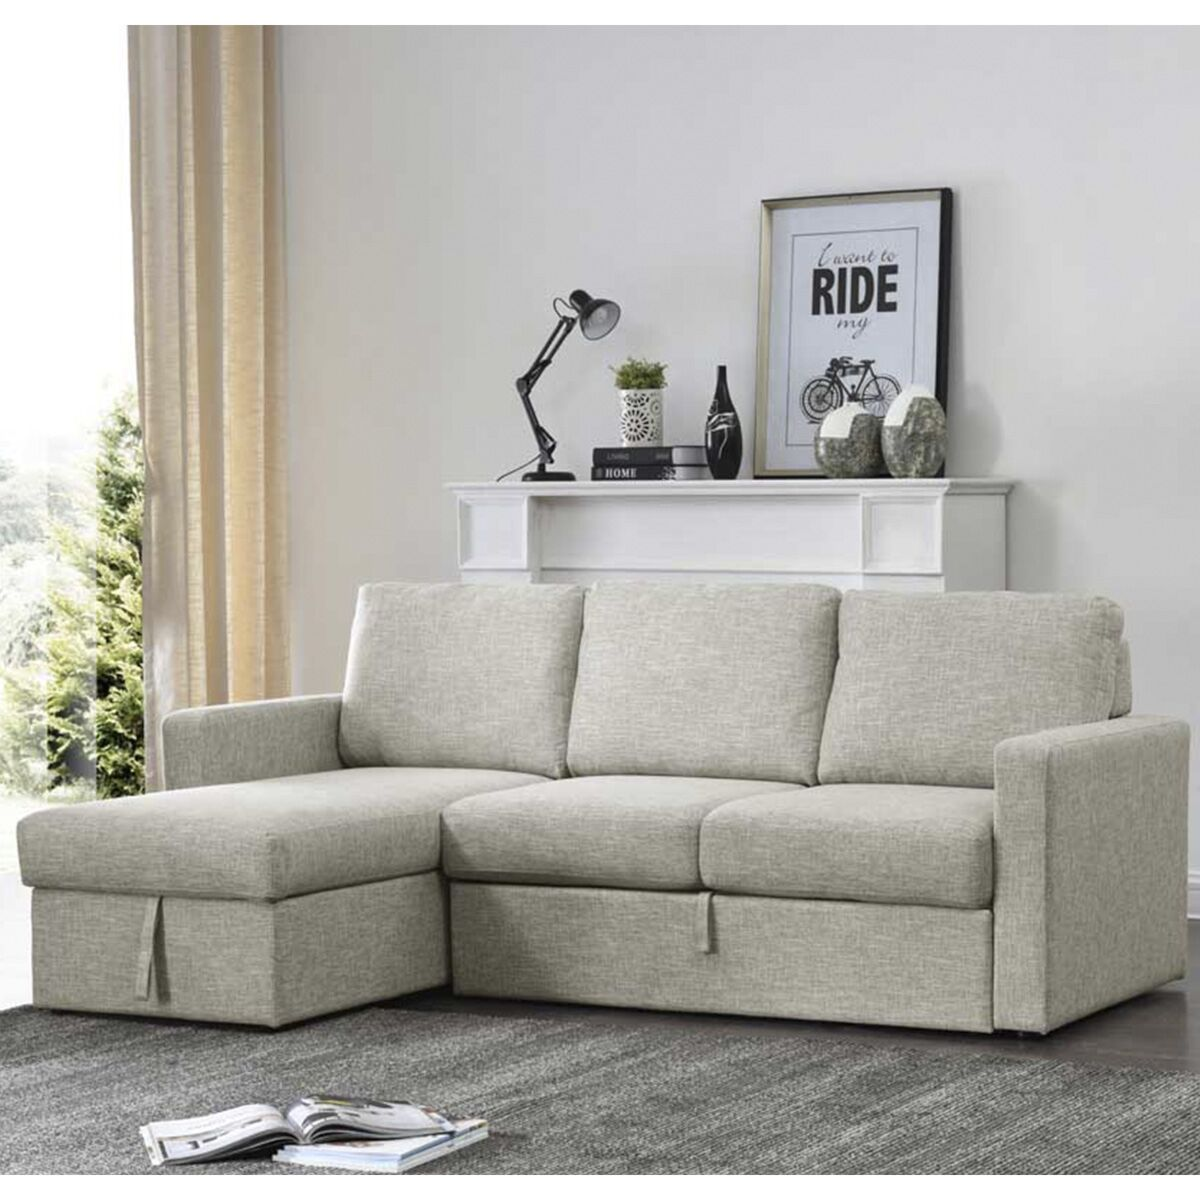 Gatsford Corner Sofa Bed With Storage Chaise Natural In 2020